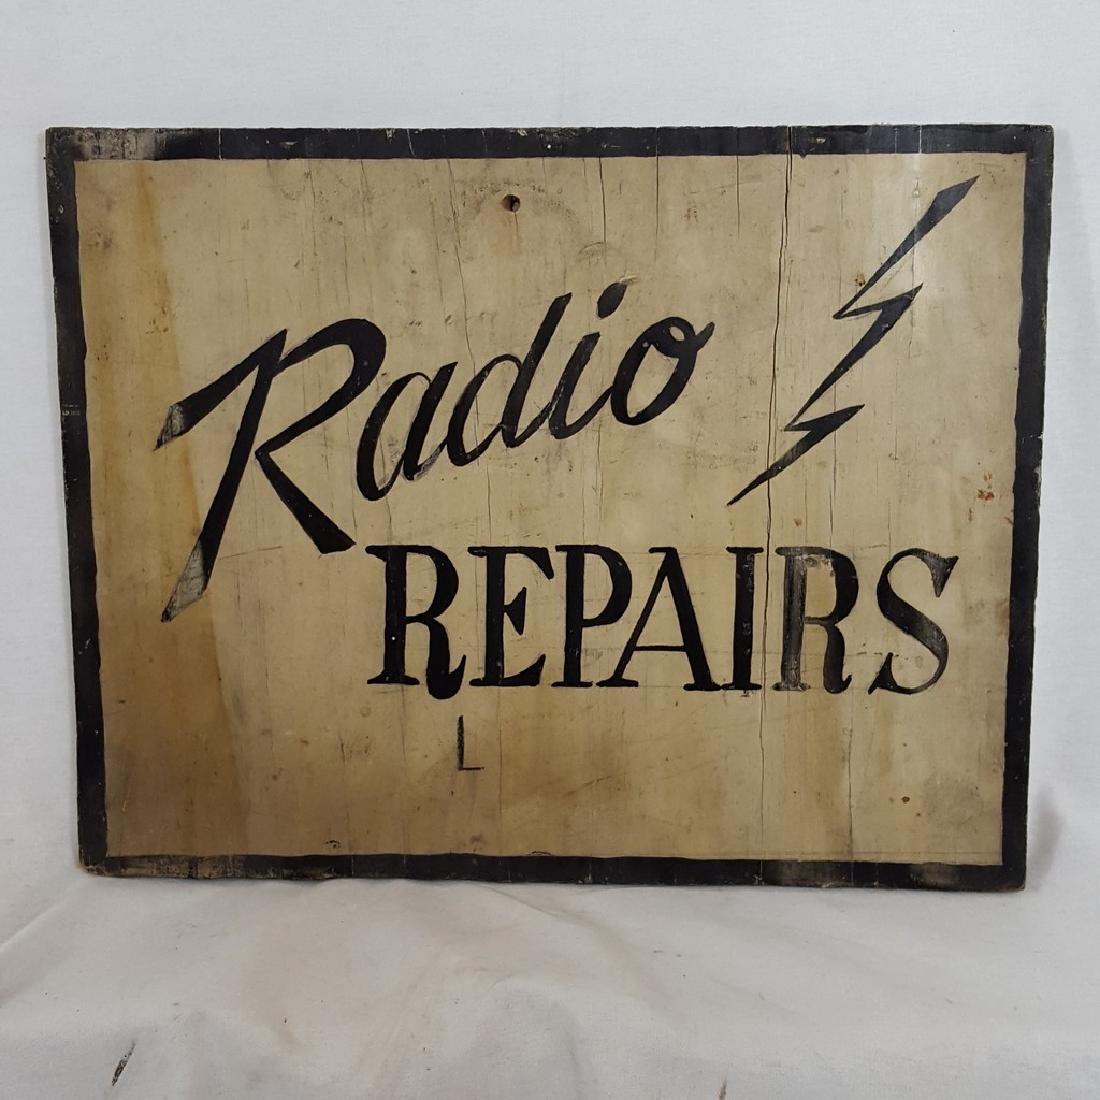 Radios Repaired Sign Ca 1930-1950